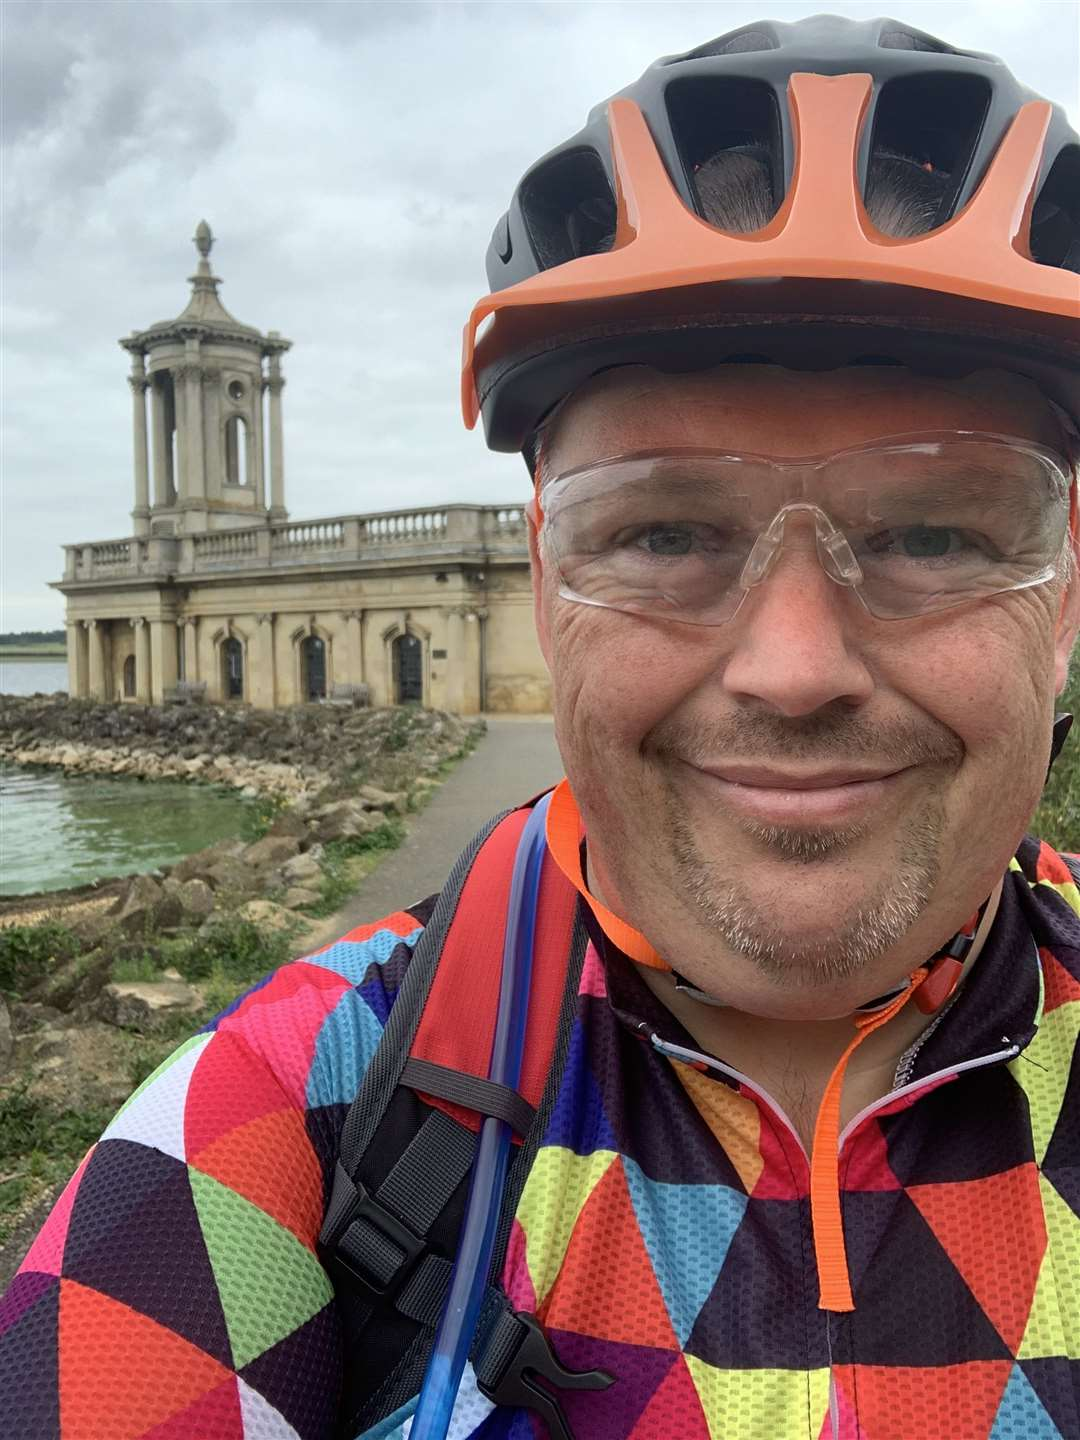 Ian Hides took part in Cycle 300 to raise £300 for Cancer Research UK. (42498741)